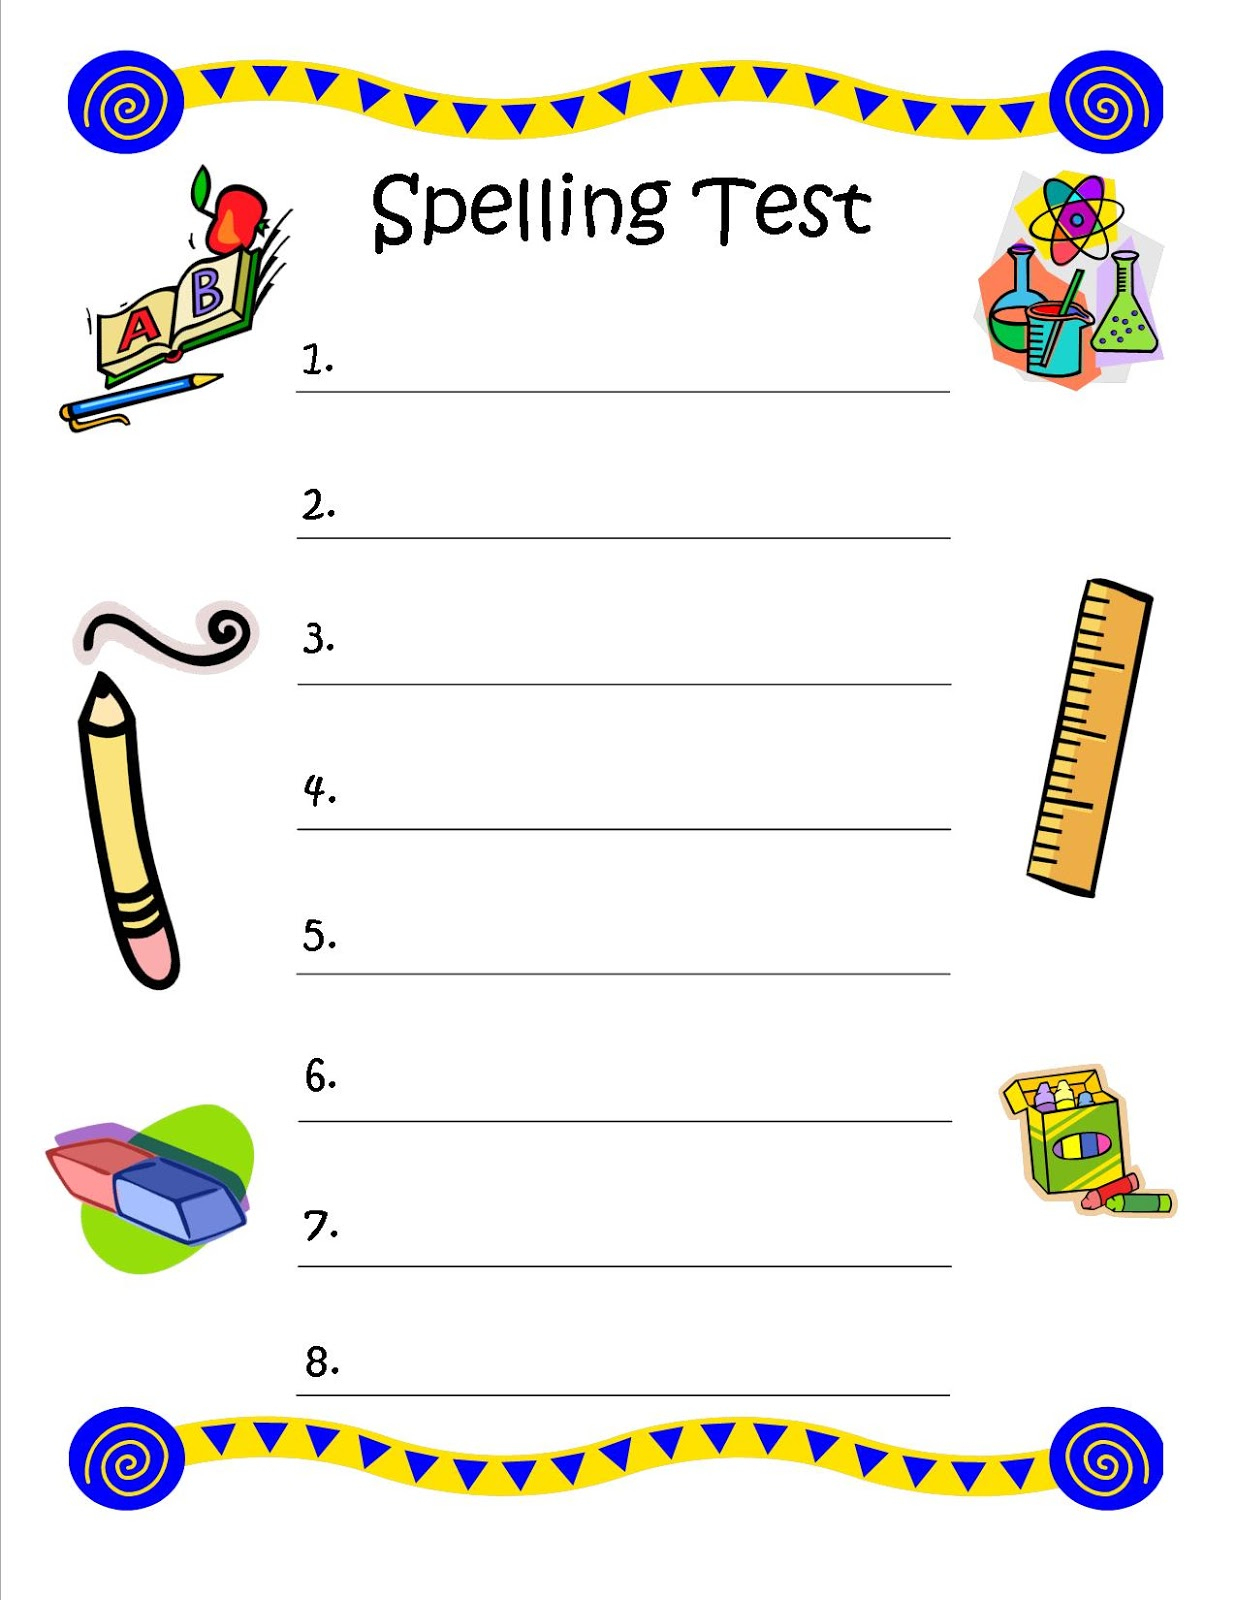 Multiple Choice Spelling Test Template - Iranport.pw - Free Printable Multiple Choice Spelling Test Maker